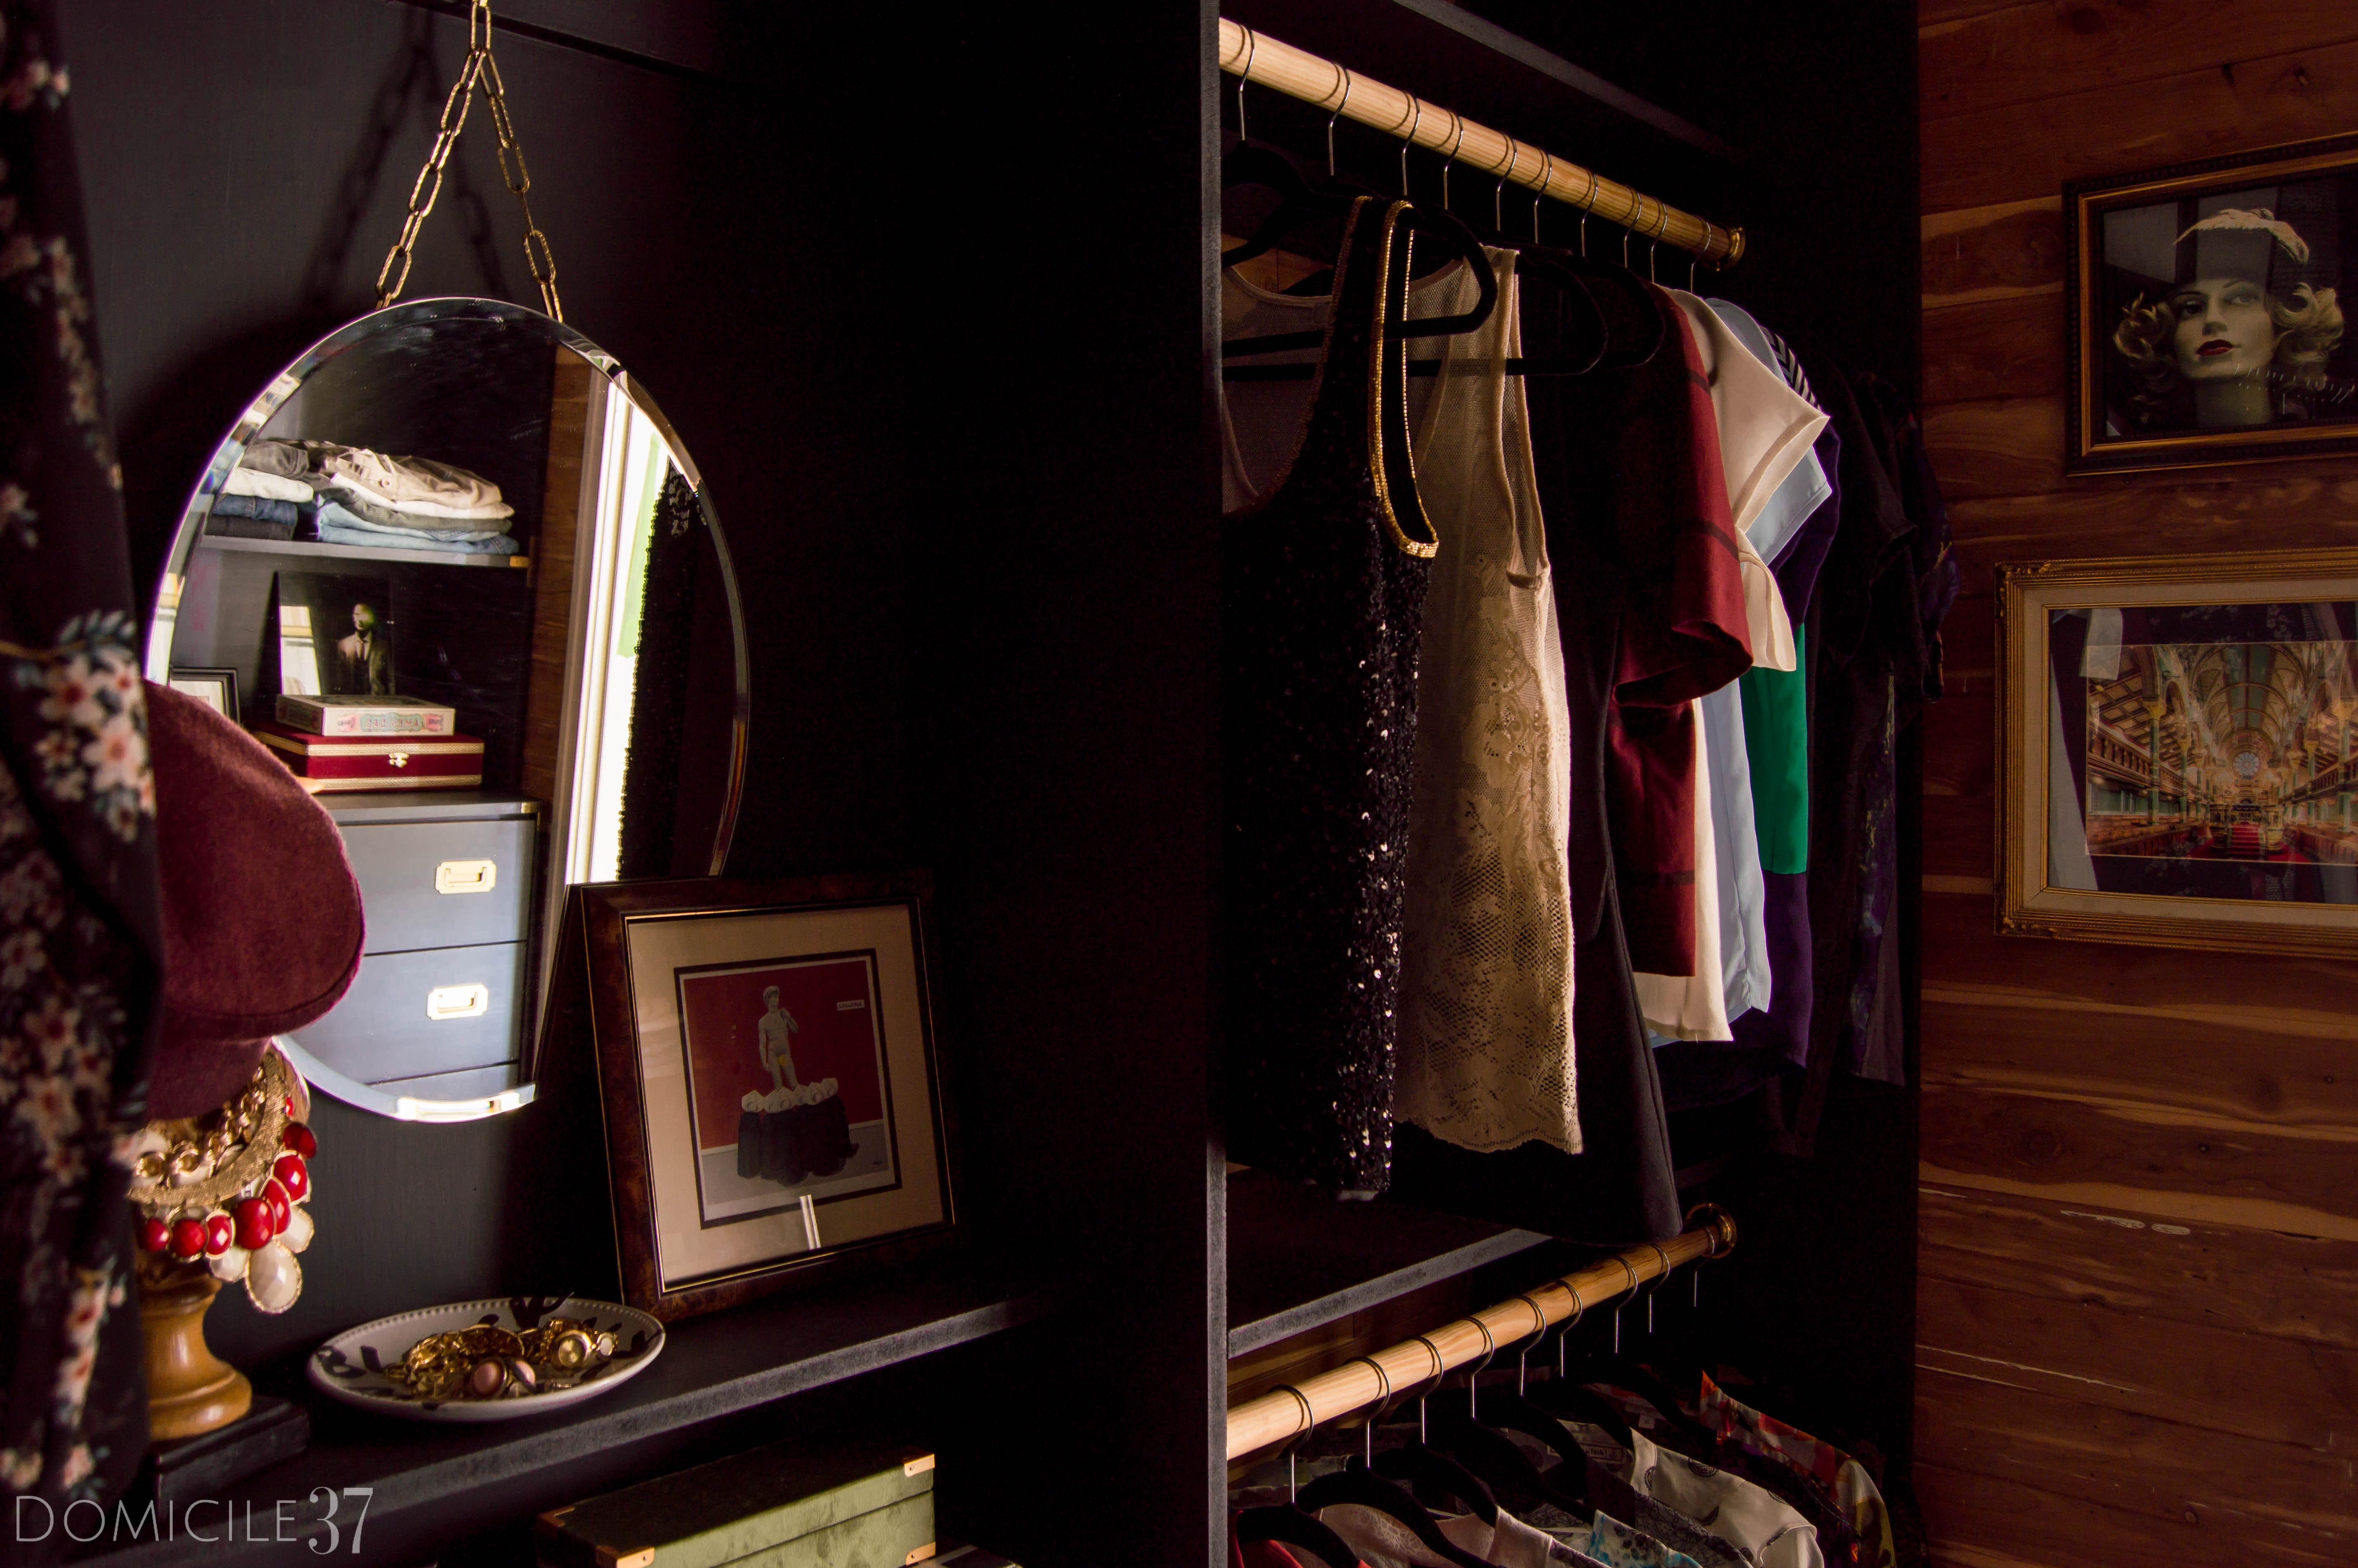 His and Her Shared Master Closet, Masculine Closet, DIY Walk-in Closet, DIY Built-ins, Black Closet, Storage Closet, New Year New Room Refresh Challenge Reveal, Wallpaper Boulevard, Lamps Plus, Dresser Styling, Double Rod Closet